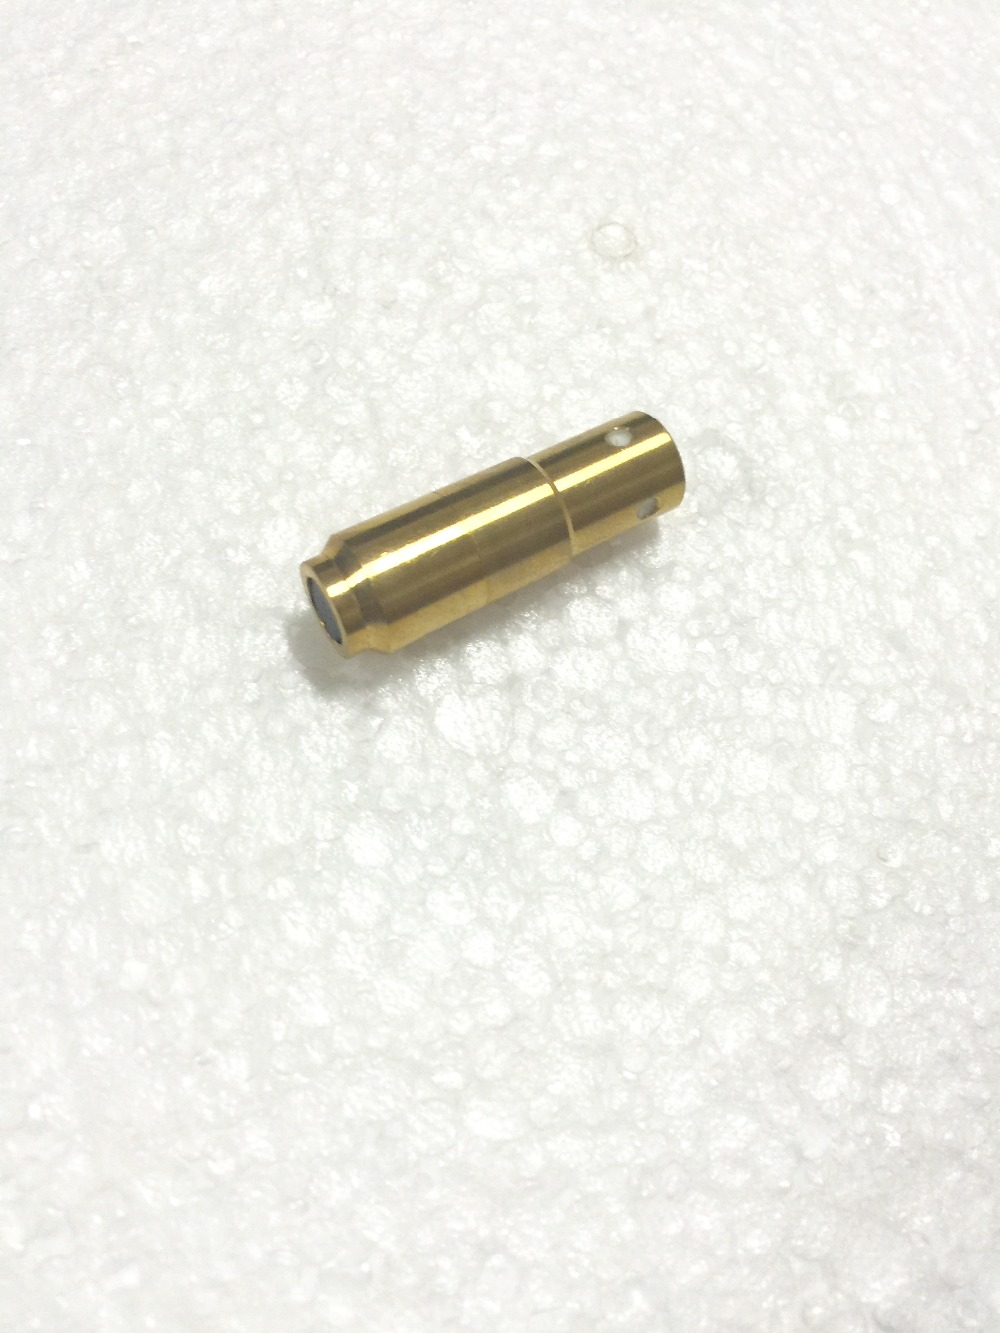 9mm Laser Ammo Laser Bullet Laser Cartridge for Dry Fire training and shooting simulation